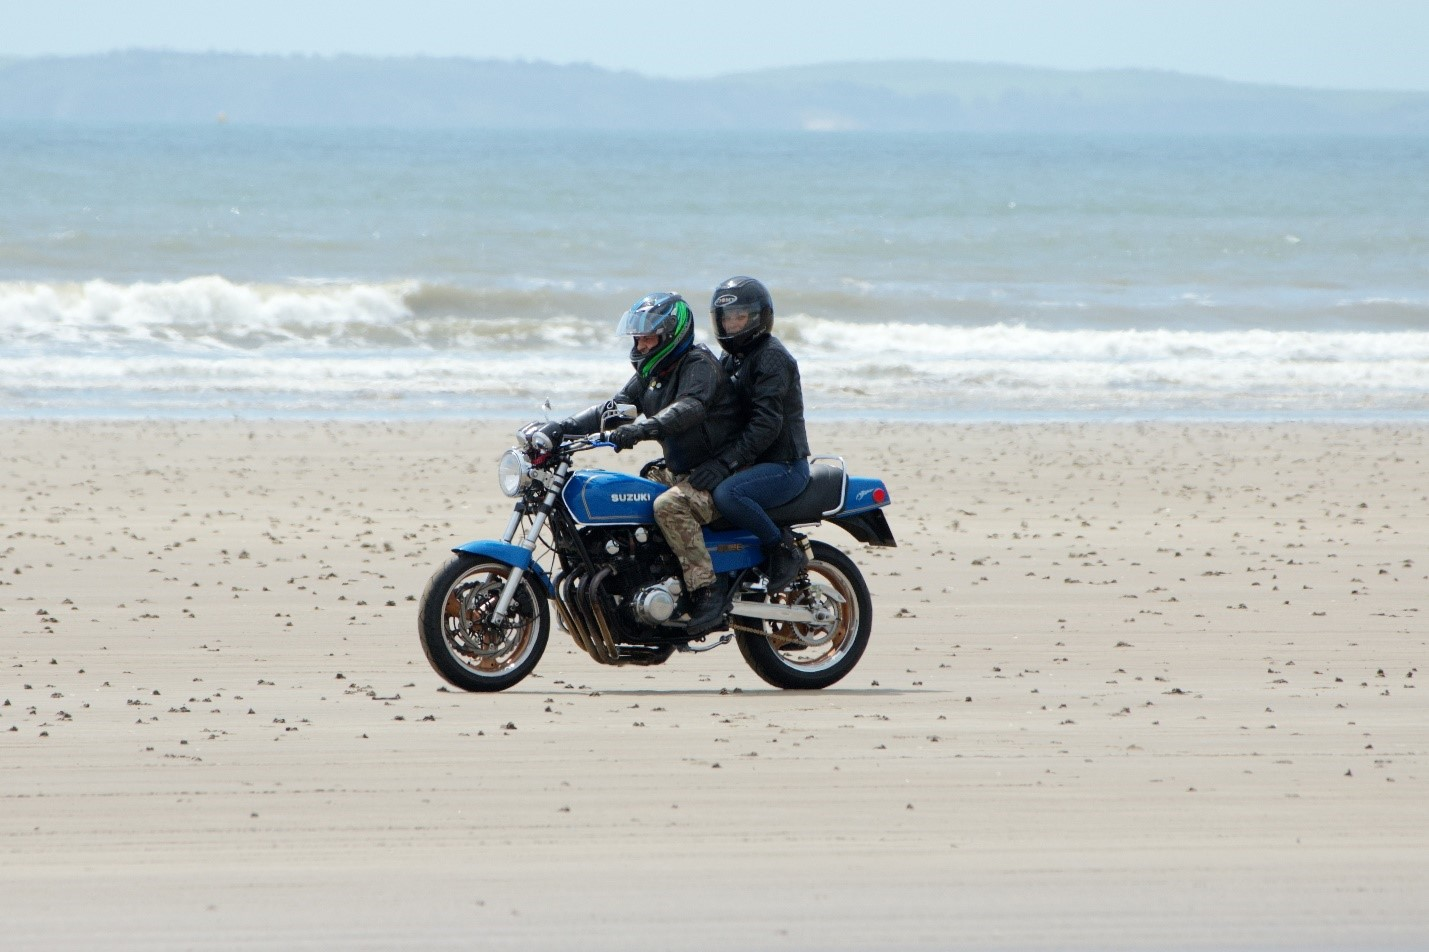 Rider Safety – Importance of Wearing a Helmet and Ways to Ride Your Motorcycle Safely